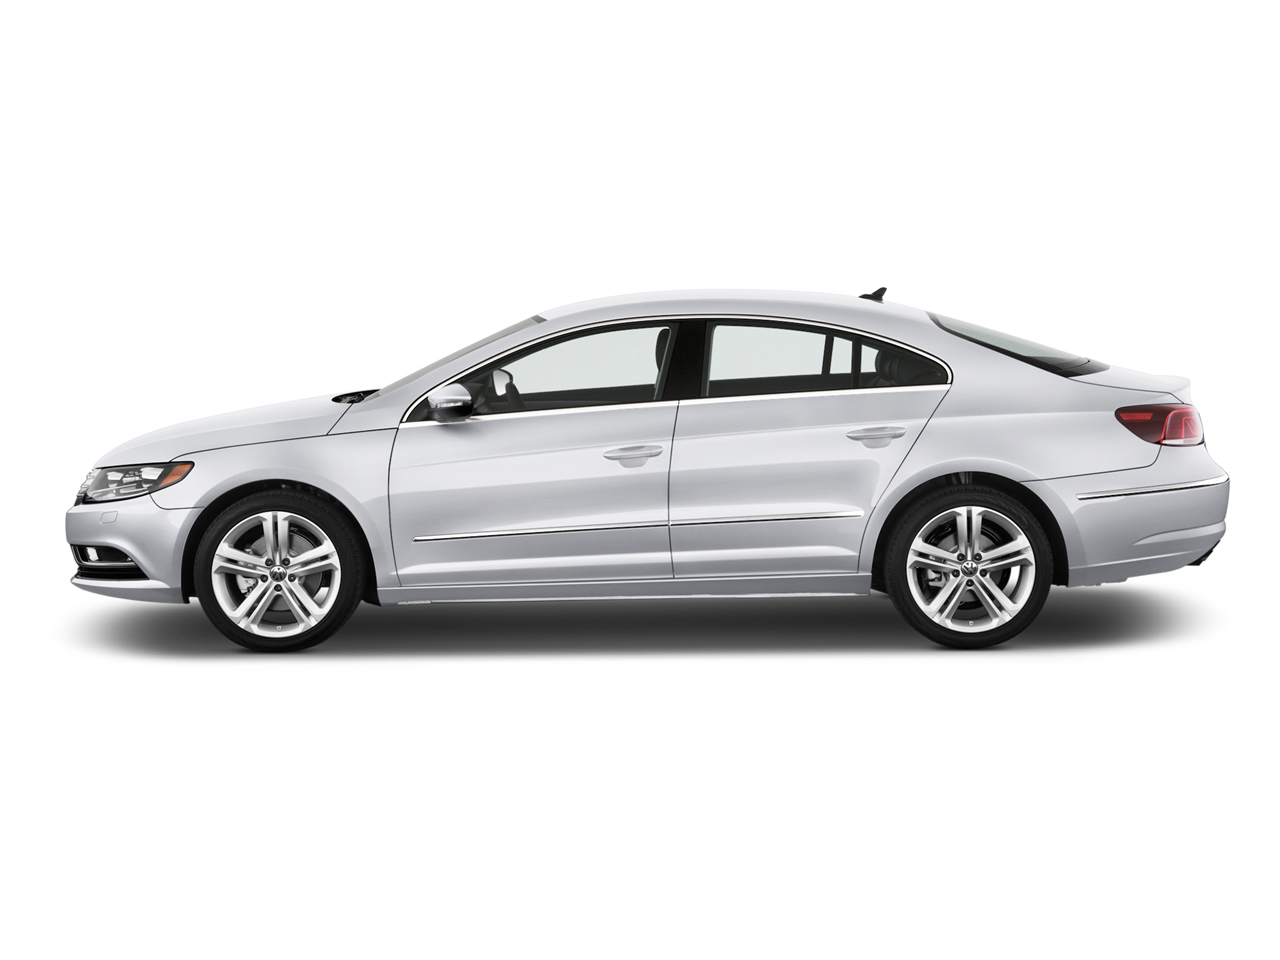 2014 volkswagen cc vw styling review the car connection. Black Bedroom Furniture Sets. Home Design Ideas